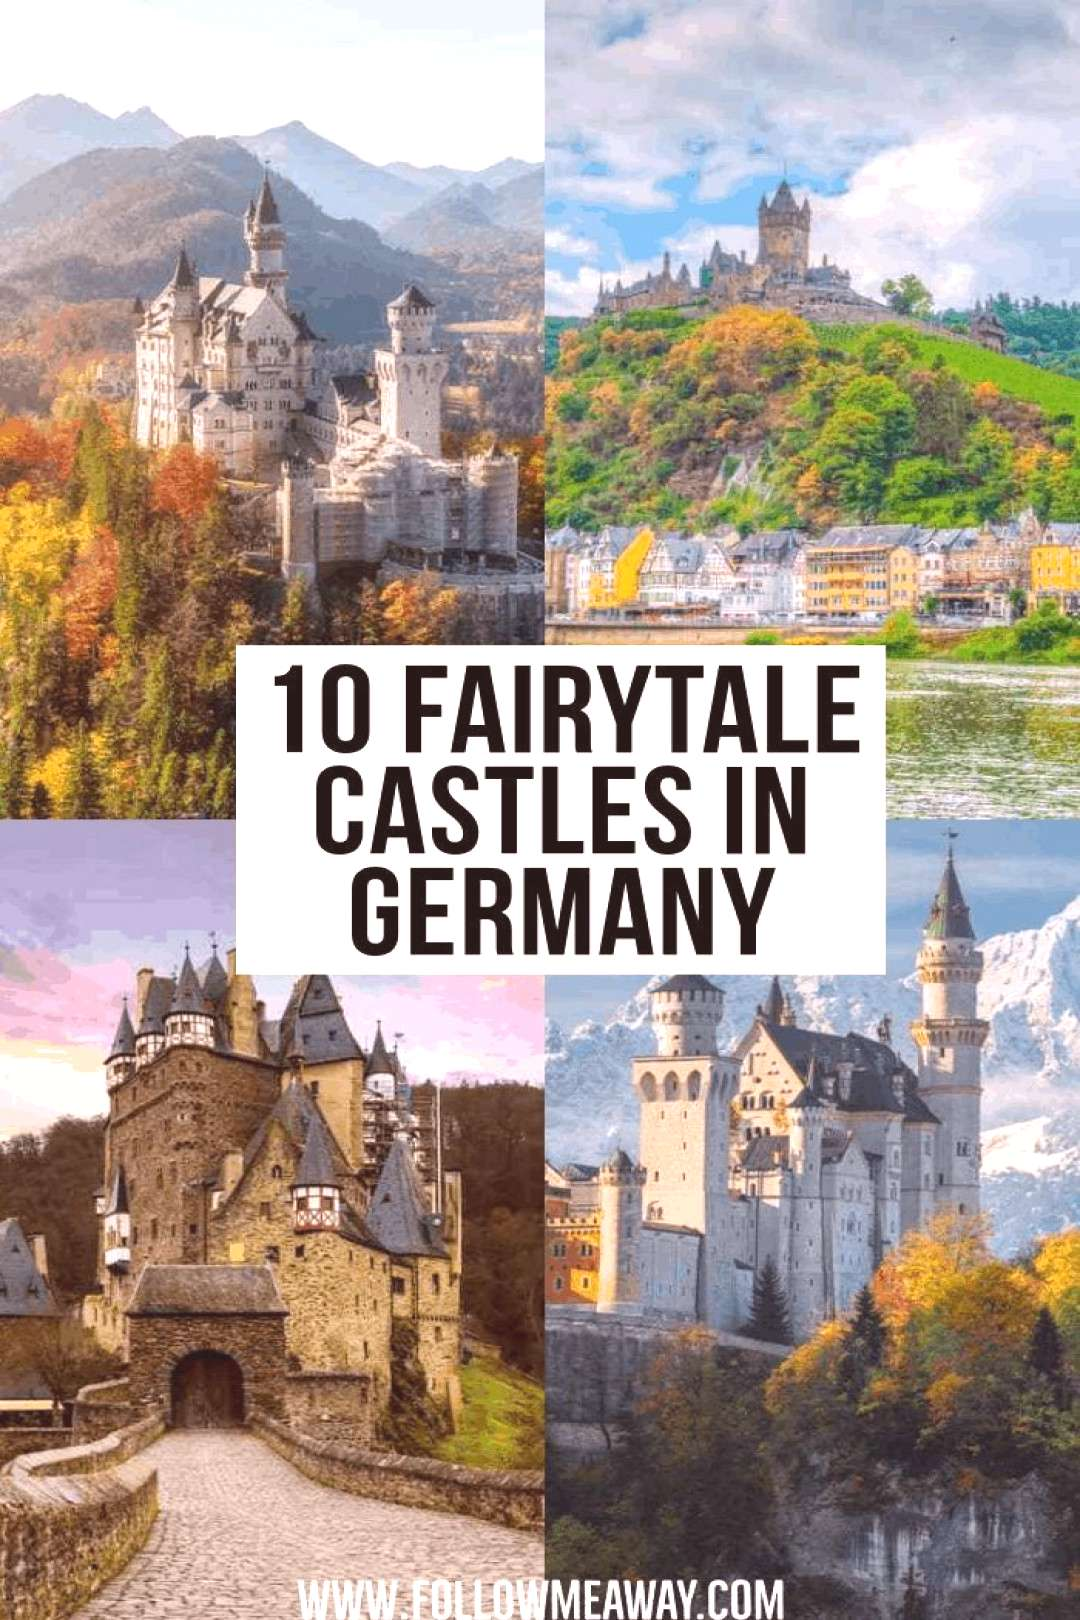 10 Fairytale Castles In Germany | where to go in Germany | beautiful locations in Germany | instagr